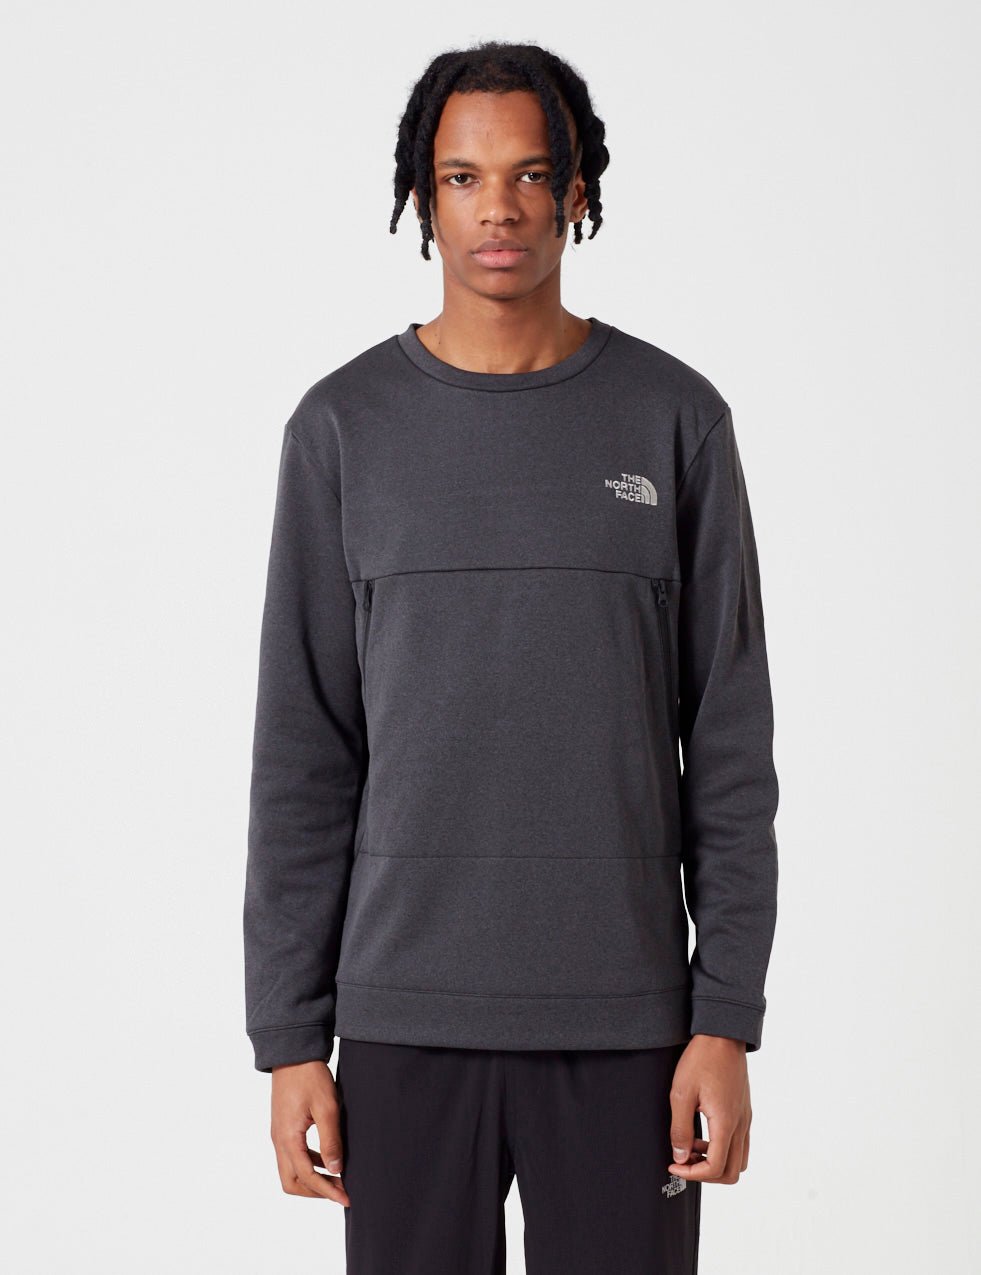 North Face Black Label Tech Crew Sweatshirt in TNF Black 07cd2842a